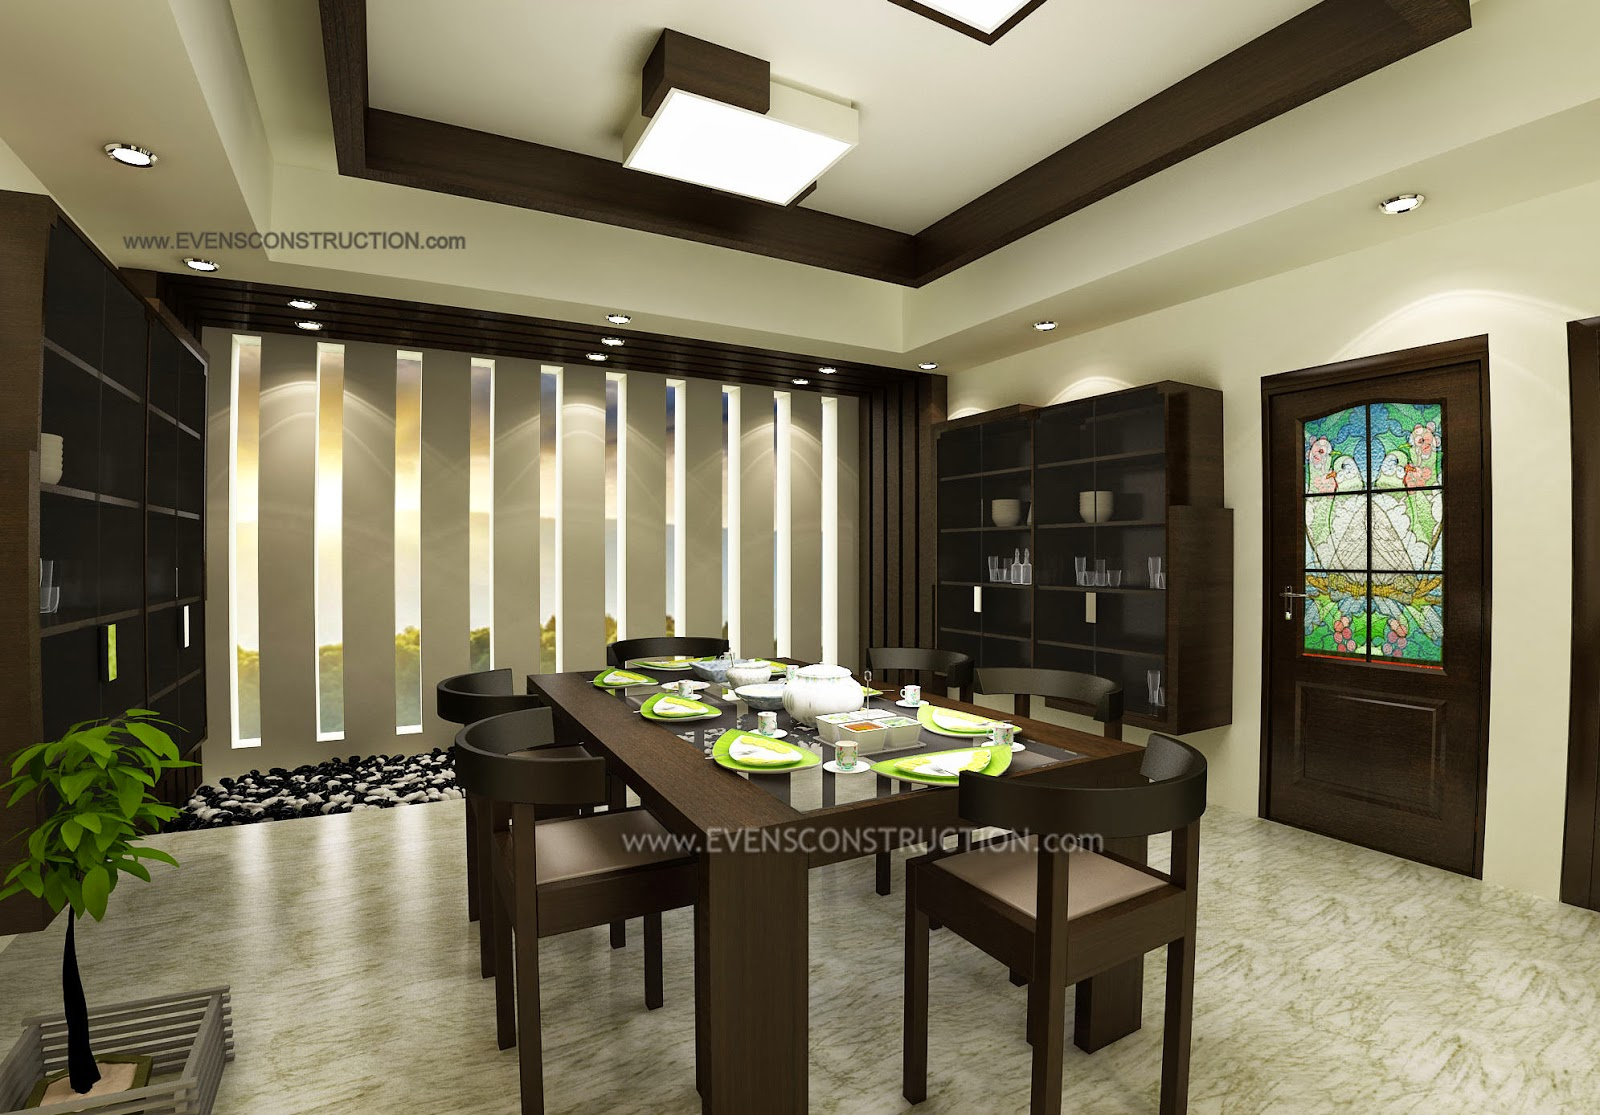 Evens construction pvt ltd modern dining room for Dining hall design ideas